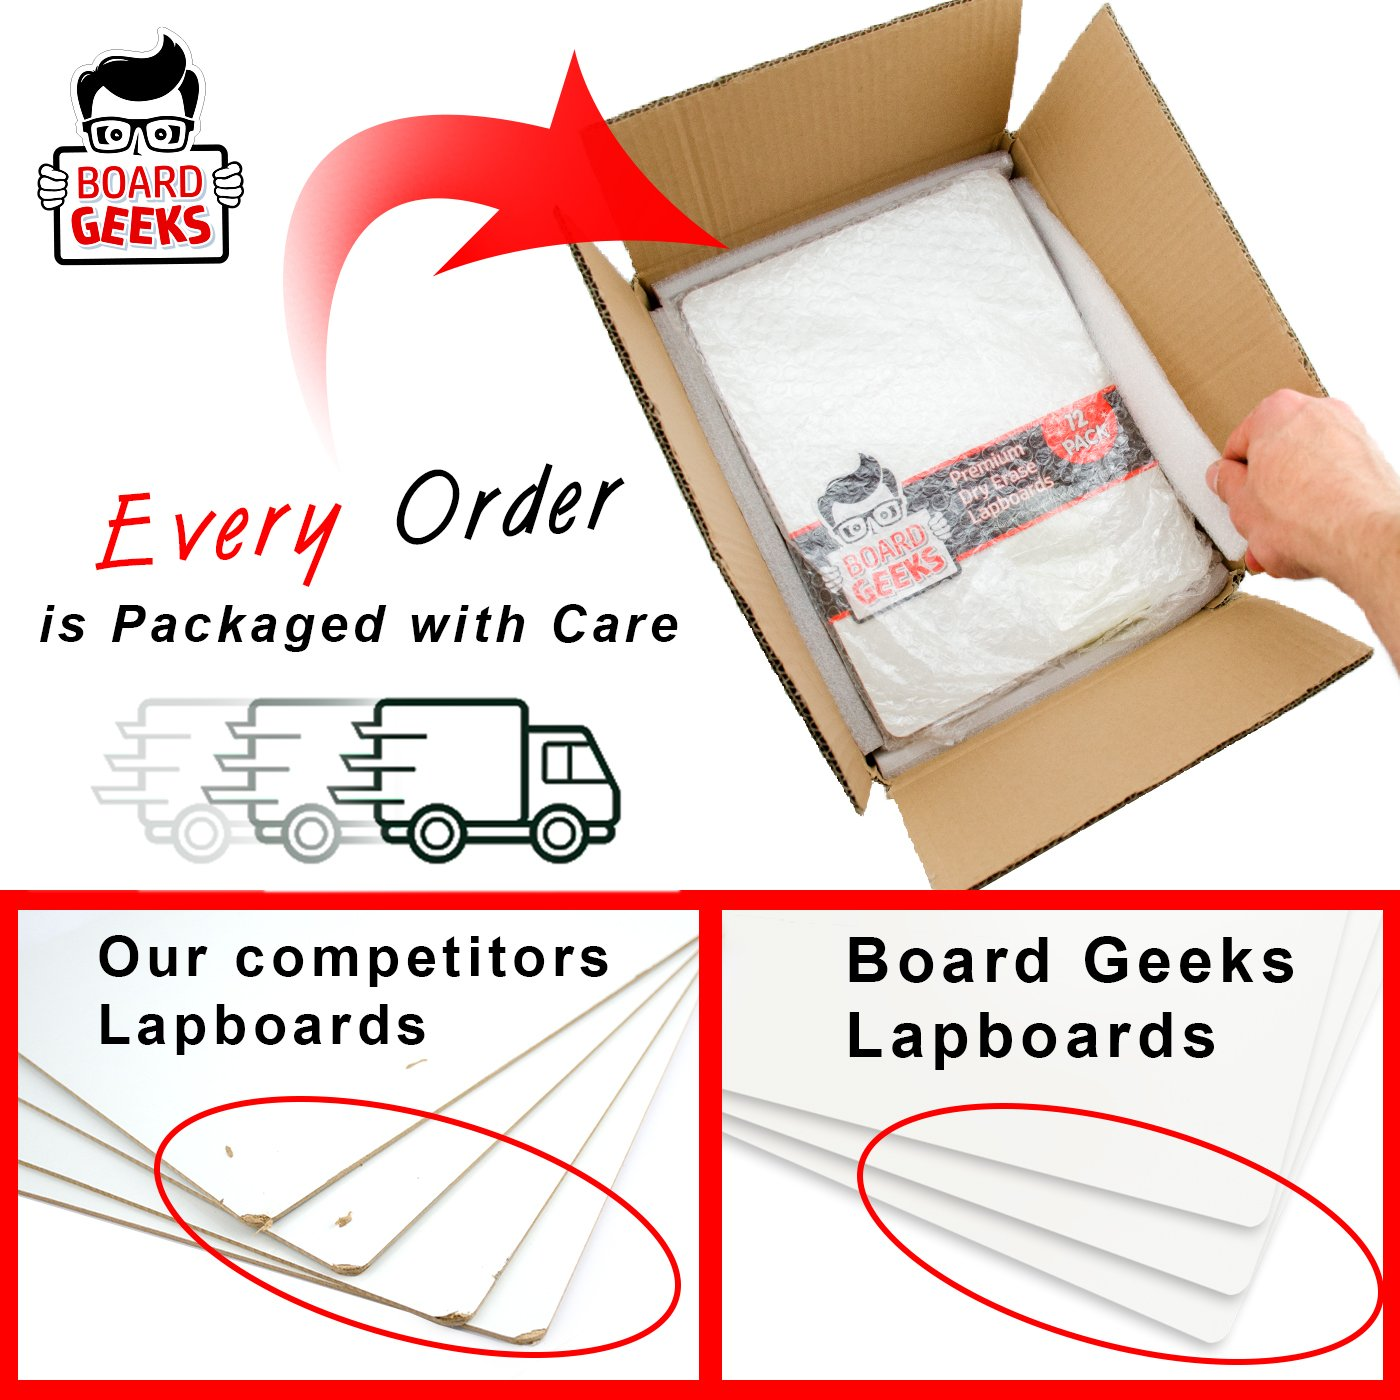 Dry Erase Lapboards | 9 x 12 inch Large Whiteboard | Pack of 25 White Board Set | Great for Teachers, Students, Children, Classroom | Reusable, Durable, Portable, Single Sided Whiteboard (25 Pack) by Board Geeks (Image #5)